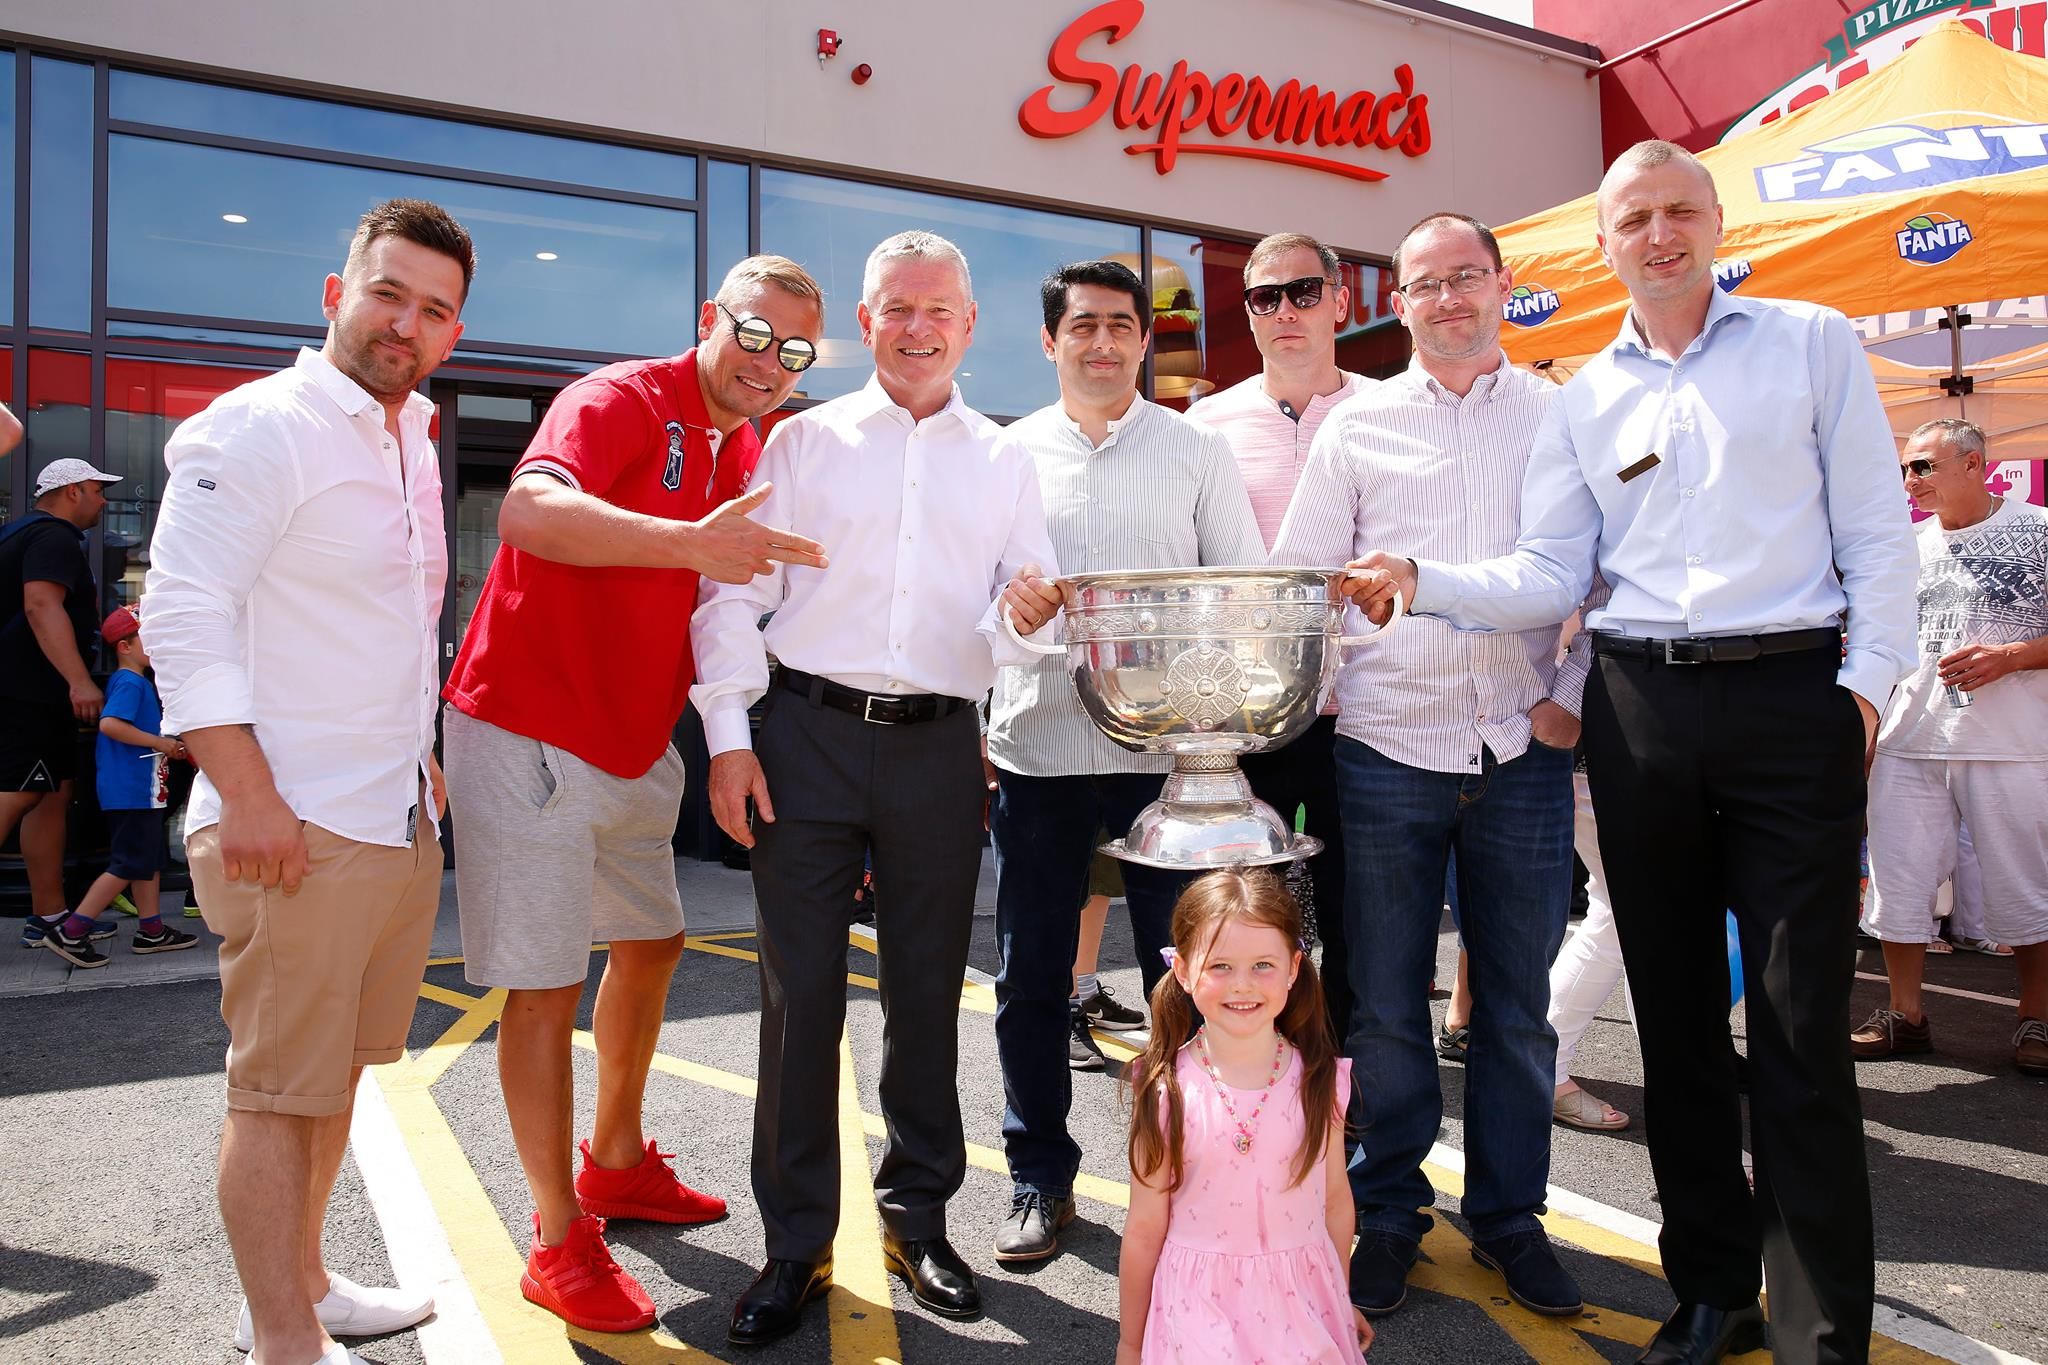 Pelco and Supermac's embrace fuel pricing software